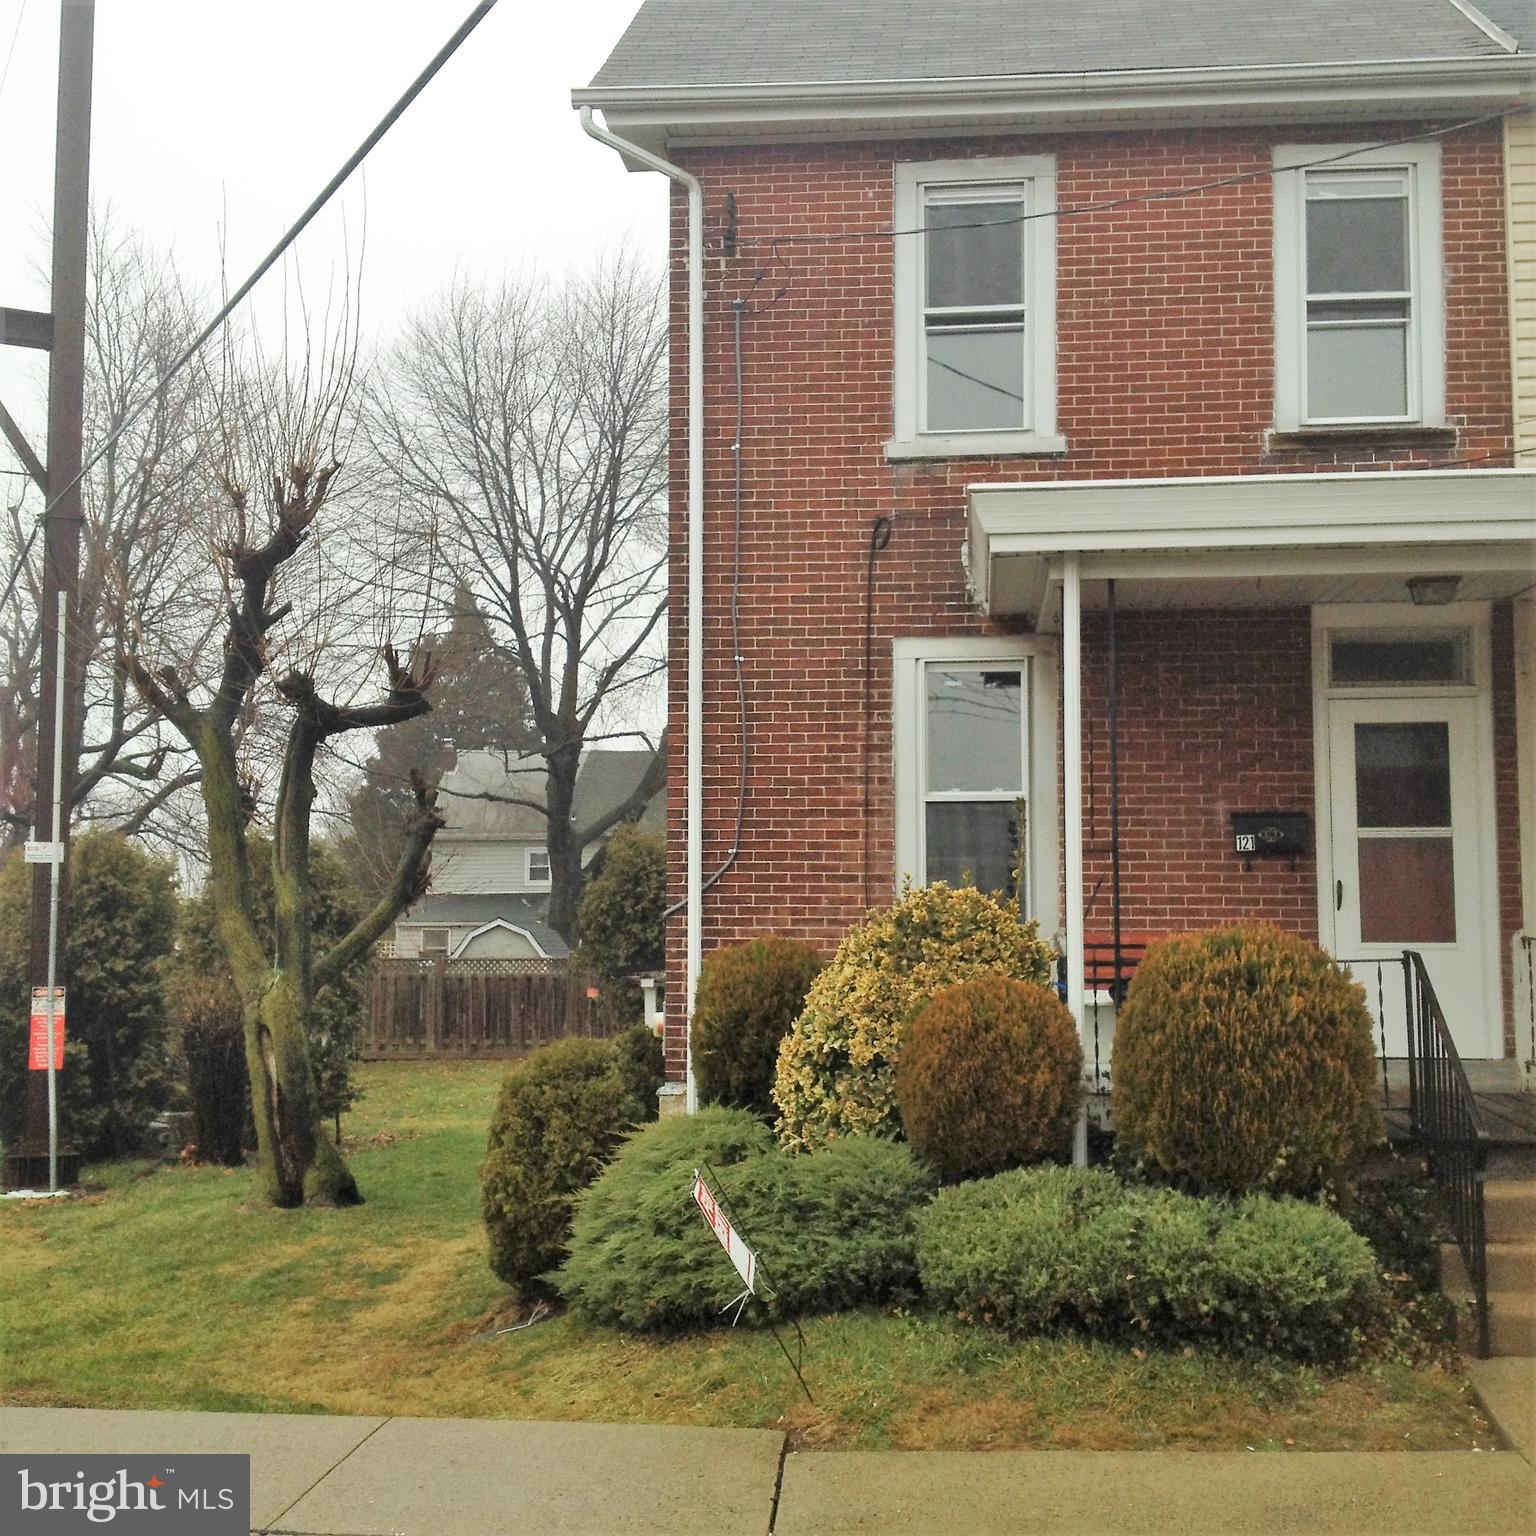 121 S 3RD STREET, NORTH WALES, Pennsylvania 19454, 3 Bedrooms Bedrooms, ,1 BathroomBathrooms,Townhouse,For Sale,121 S 3RD STREET,PAMC691150